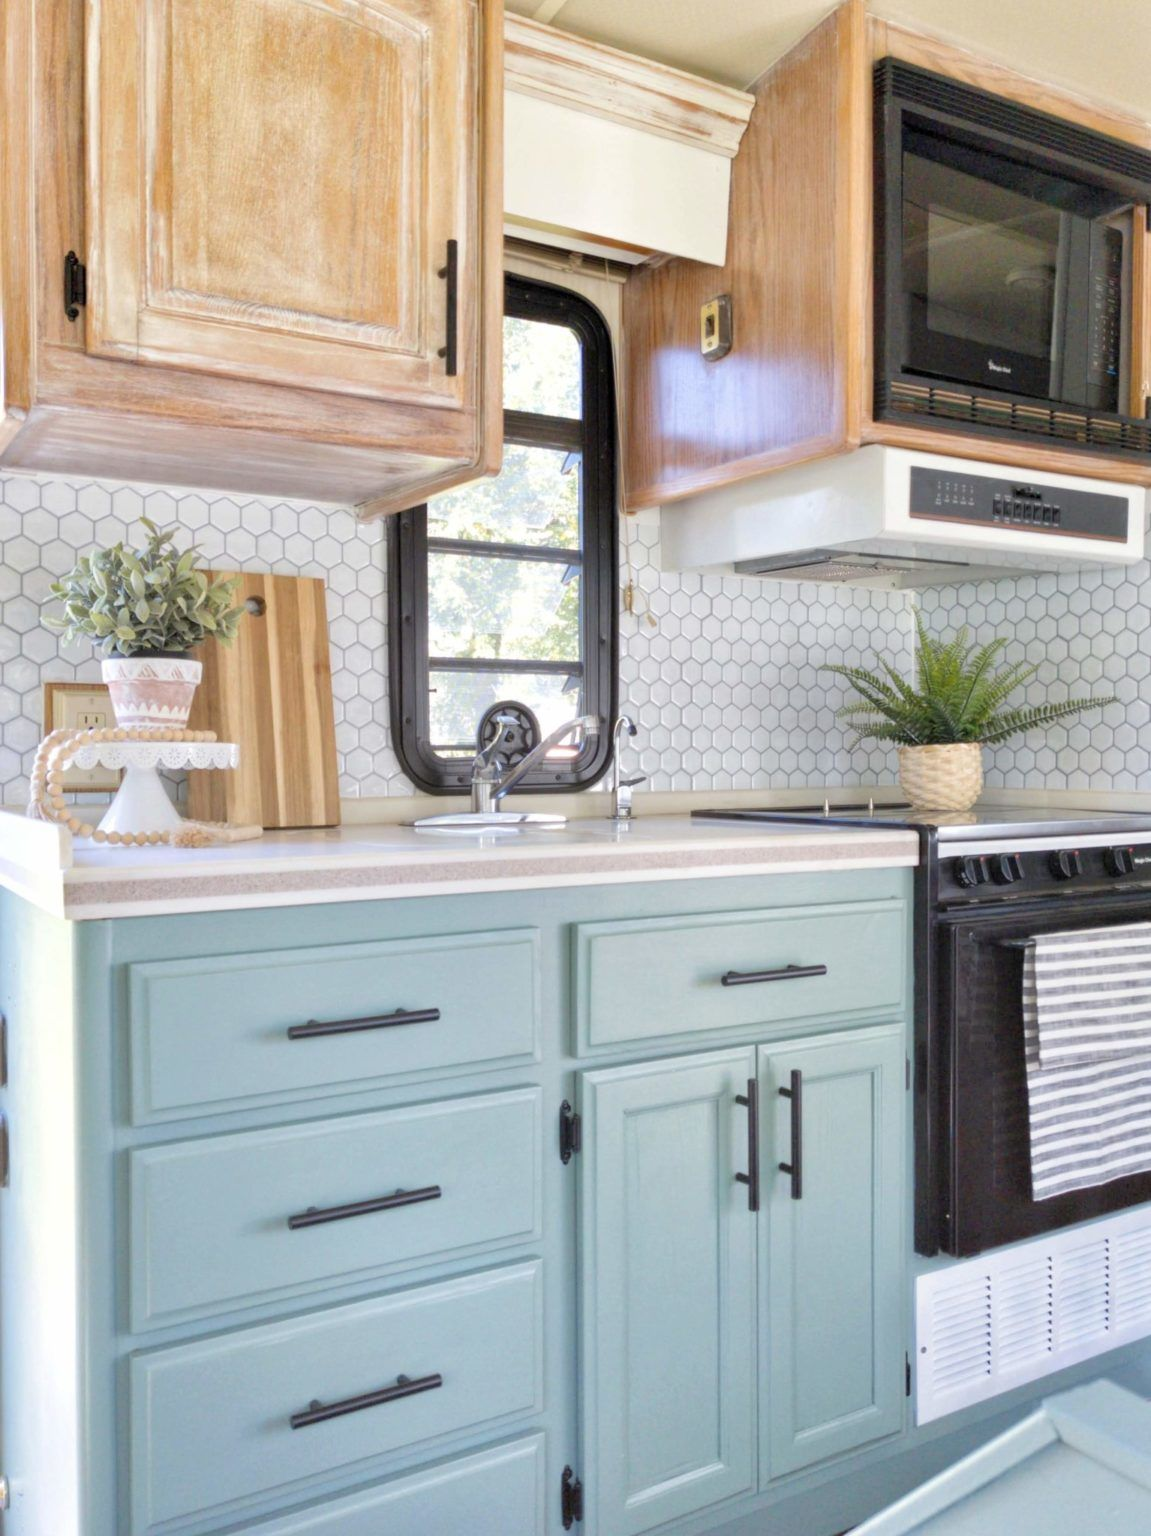 Diy Farmhouse Look Bleached And White Washed Oak Cabinets In 2020 White Washed Oak Oak Cabinets Whitewash Kitchen Cabinets